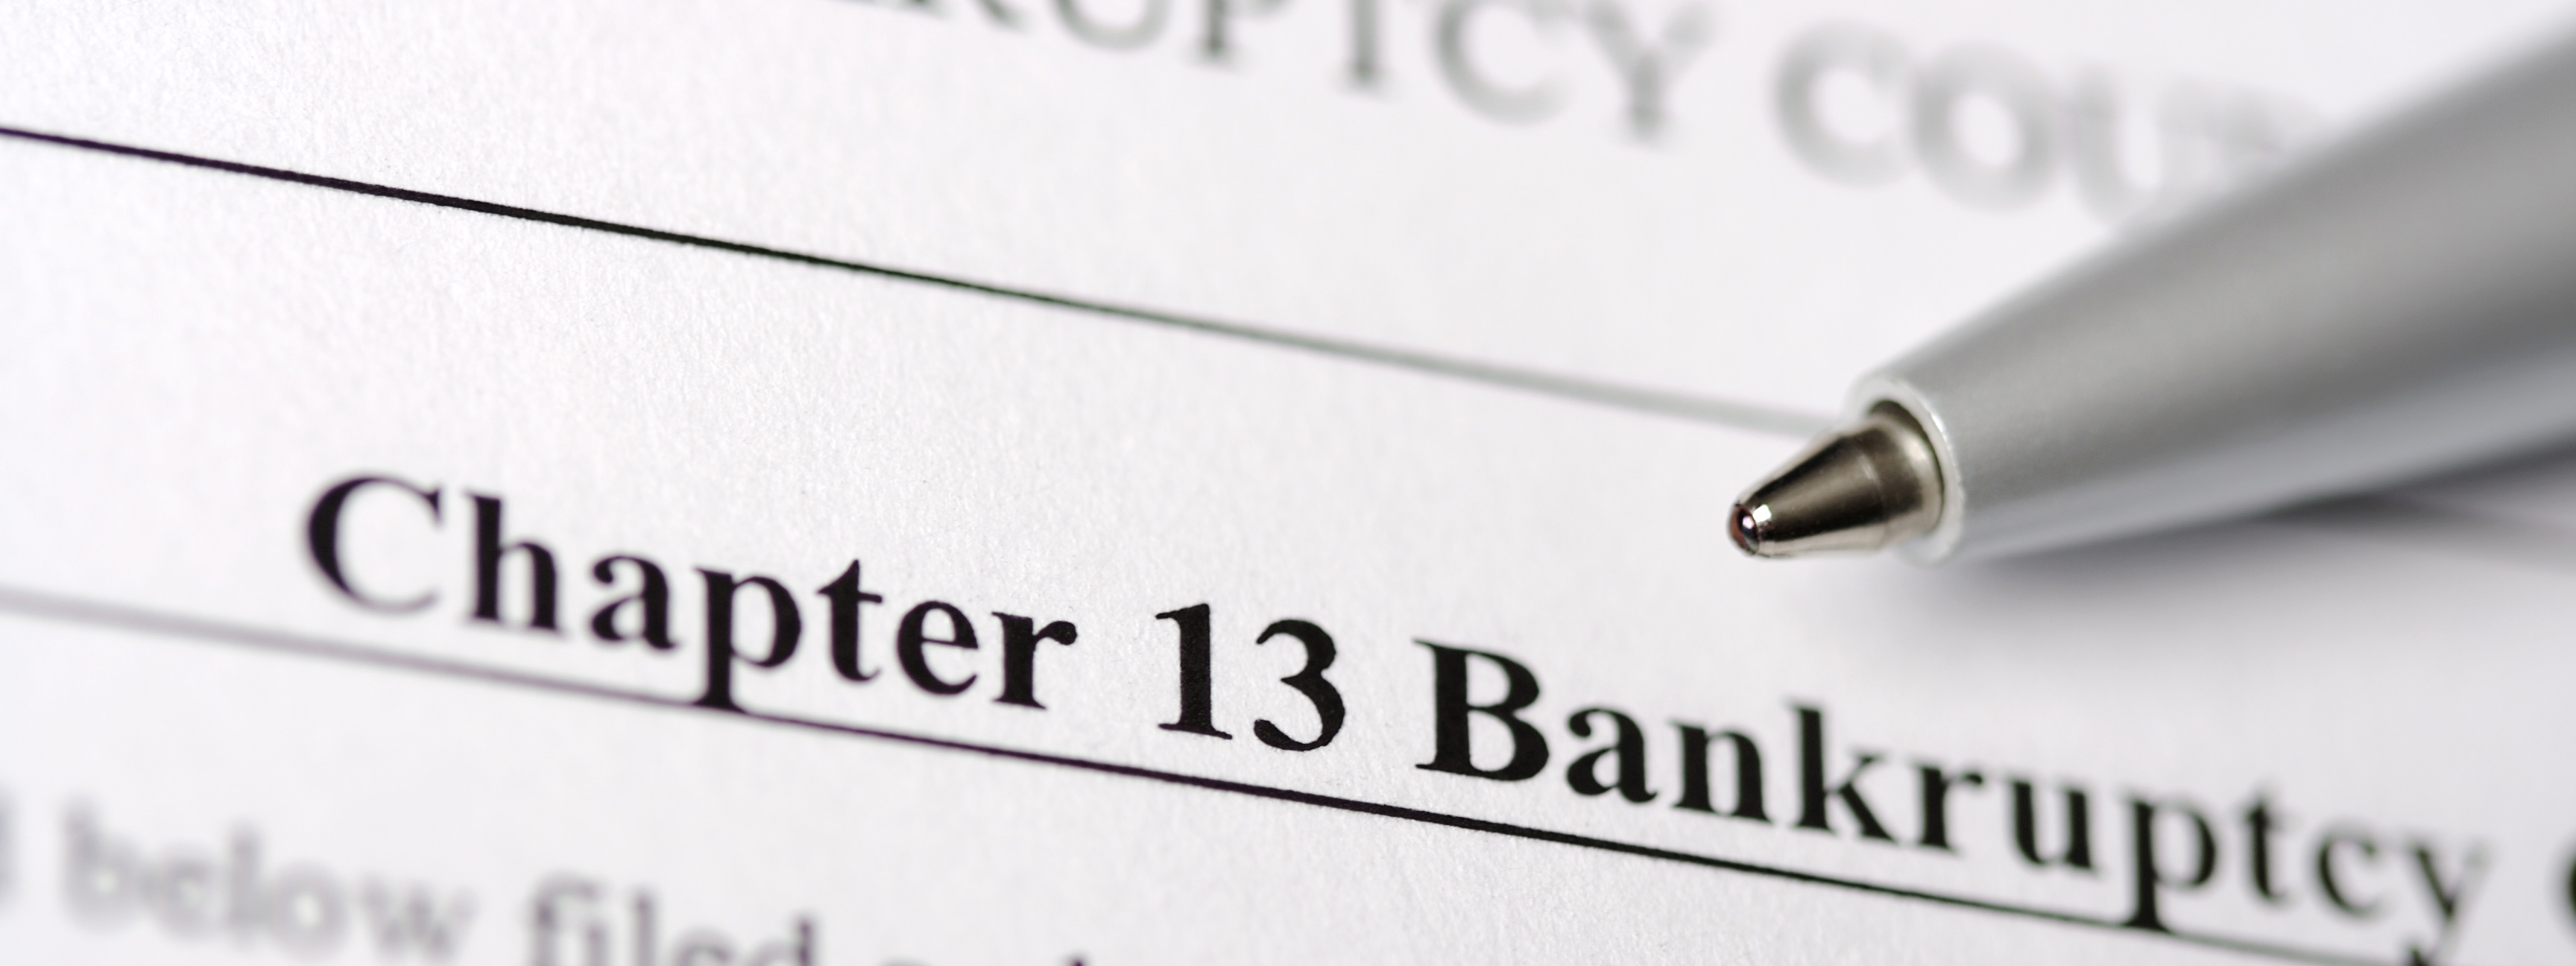 Bankruptcy & Insolvency - New Bankruptcy Regulations from 1 April 2021